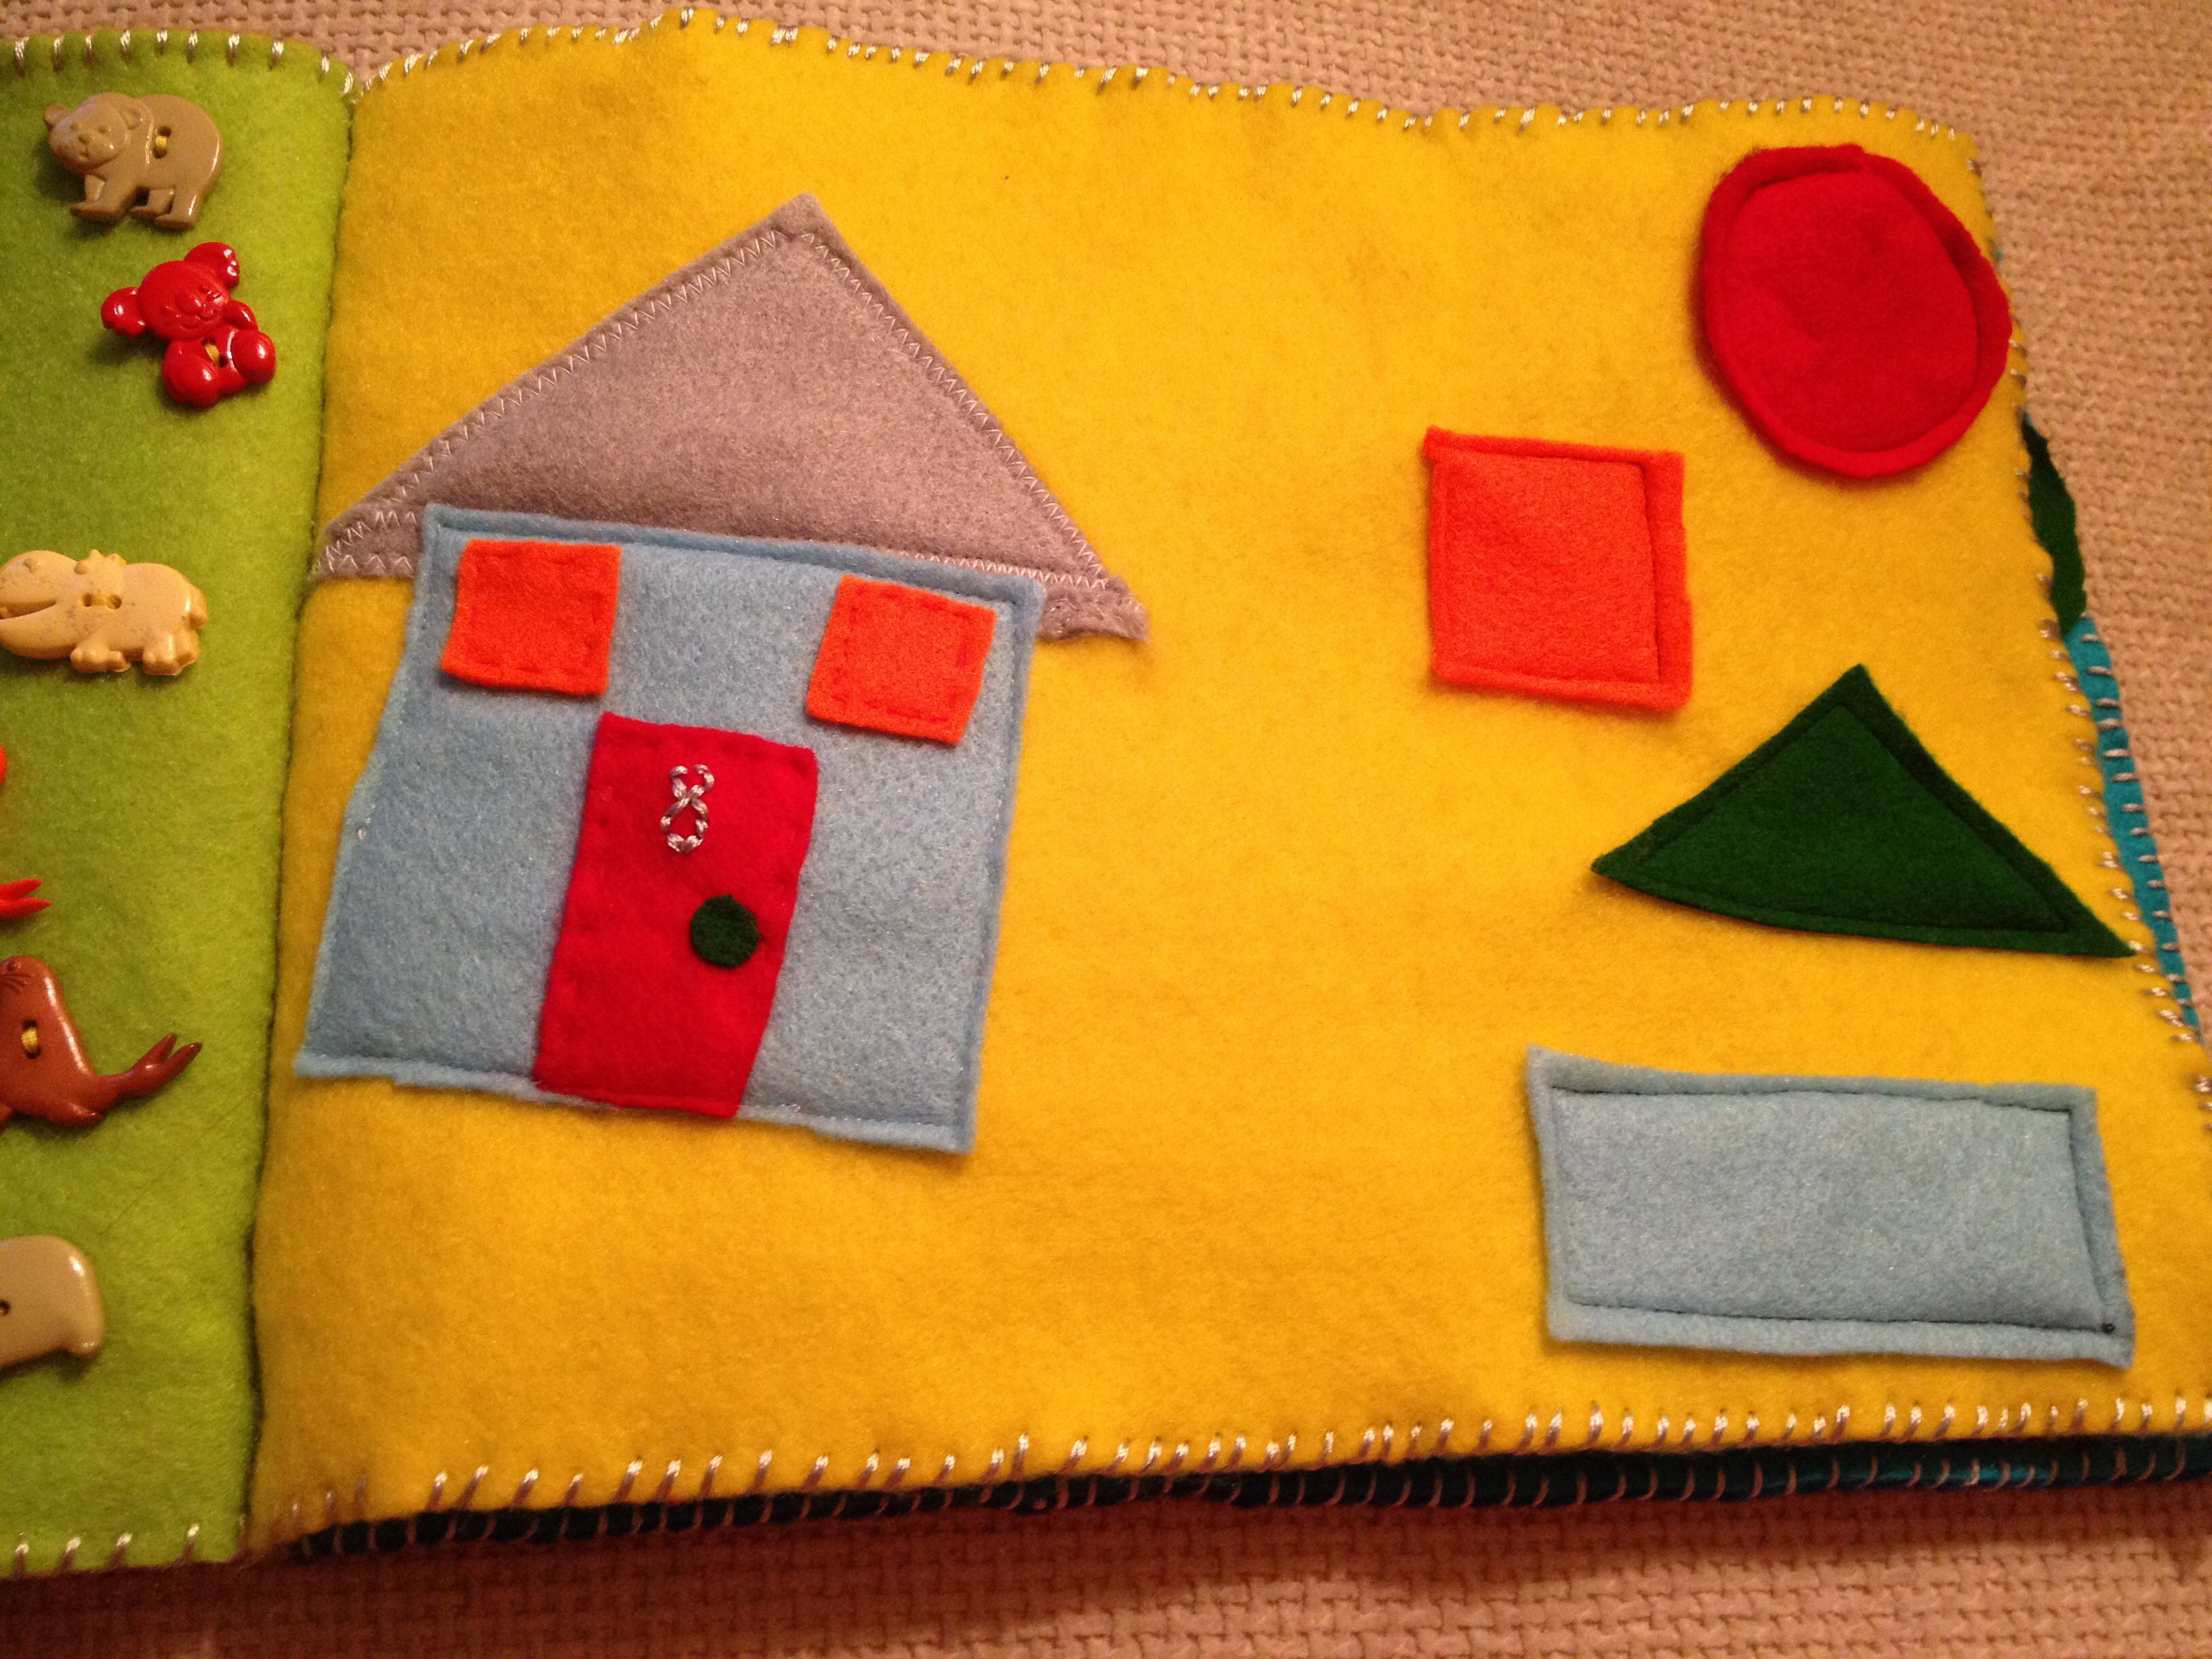 Shapes with house made from the shapes